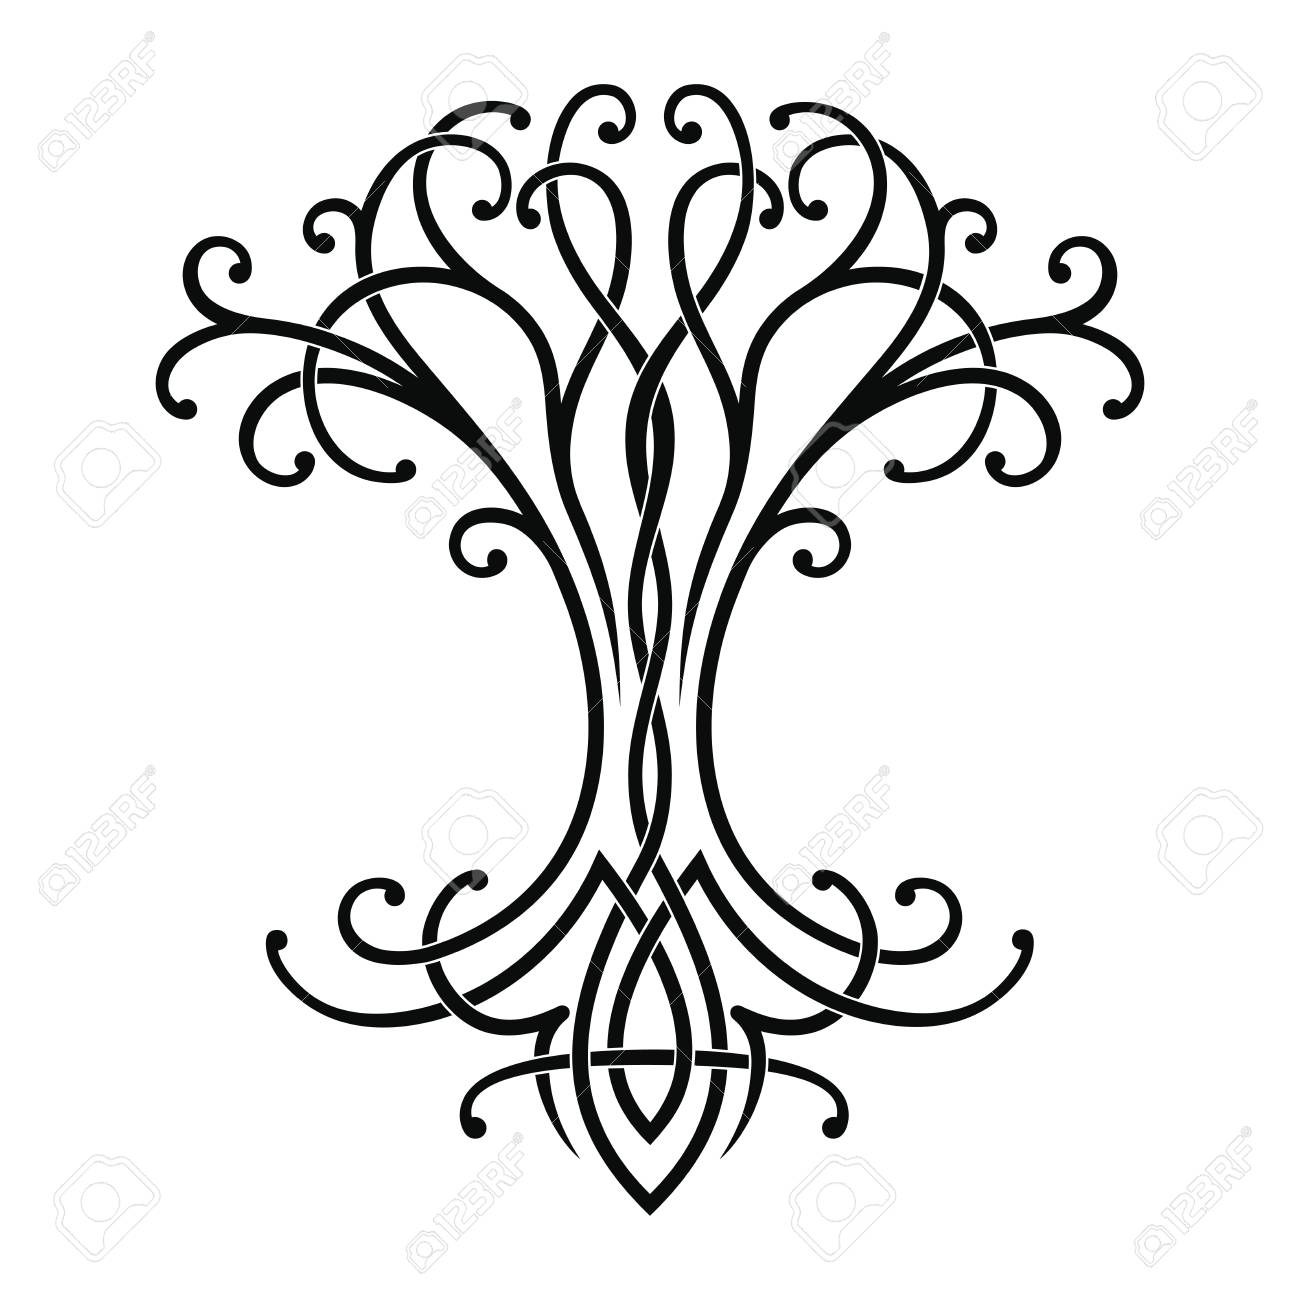 vector celtic national drawing of a tree of life royalty free rh 123rf com tree of life vector free tree of life vector equilibrium vortex